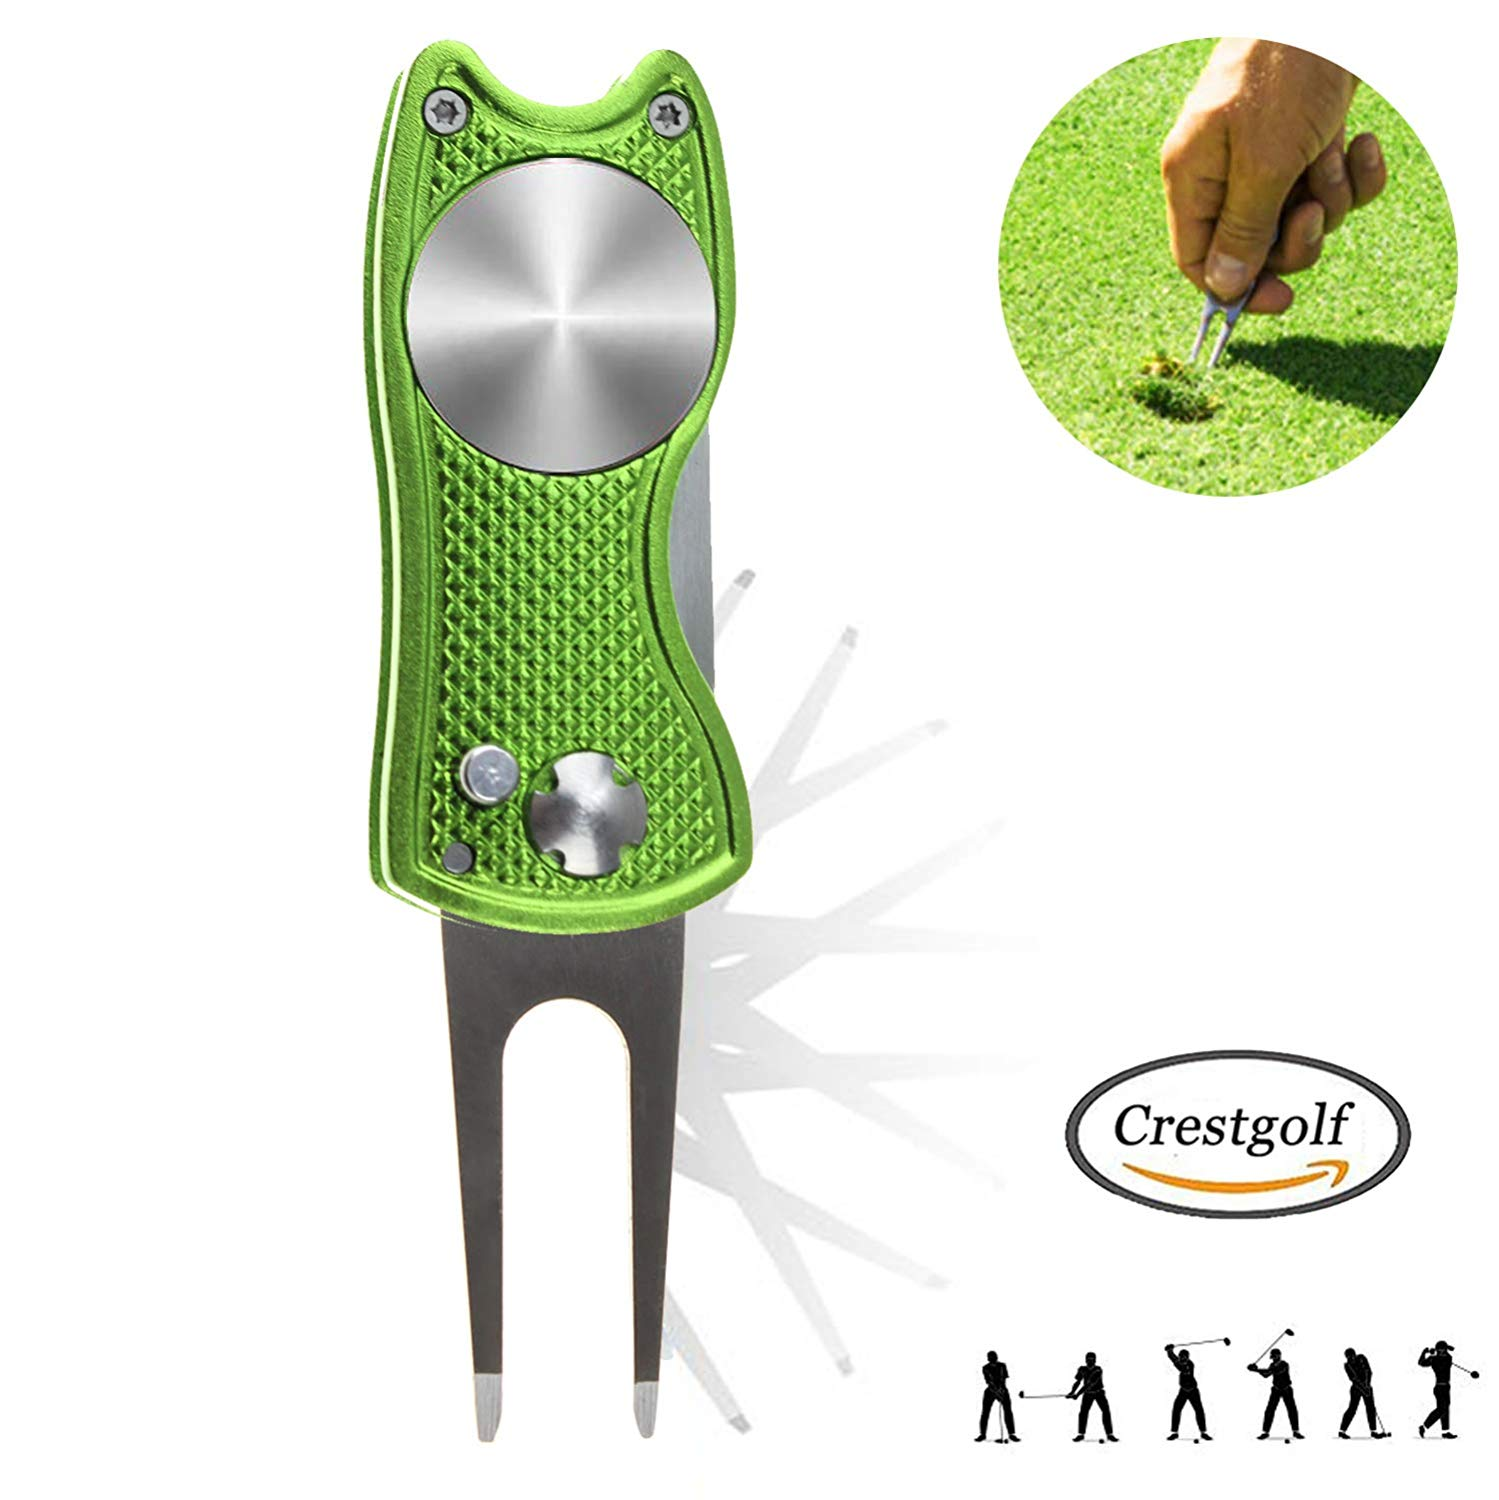 2pcs/pack Switchblade Golf Divot Tool Pitch / Choose Colors At Will / Arrive On Time / Golf Training Aids Tools Golf Accessories